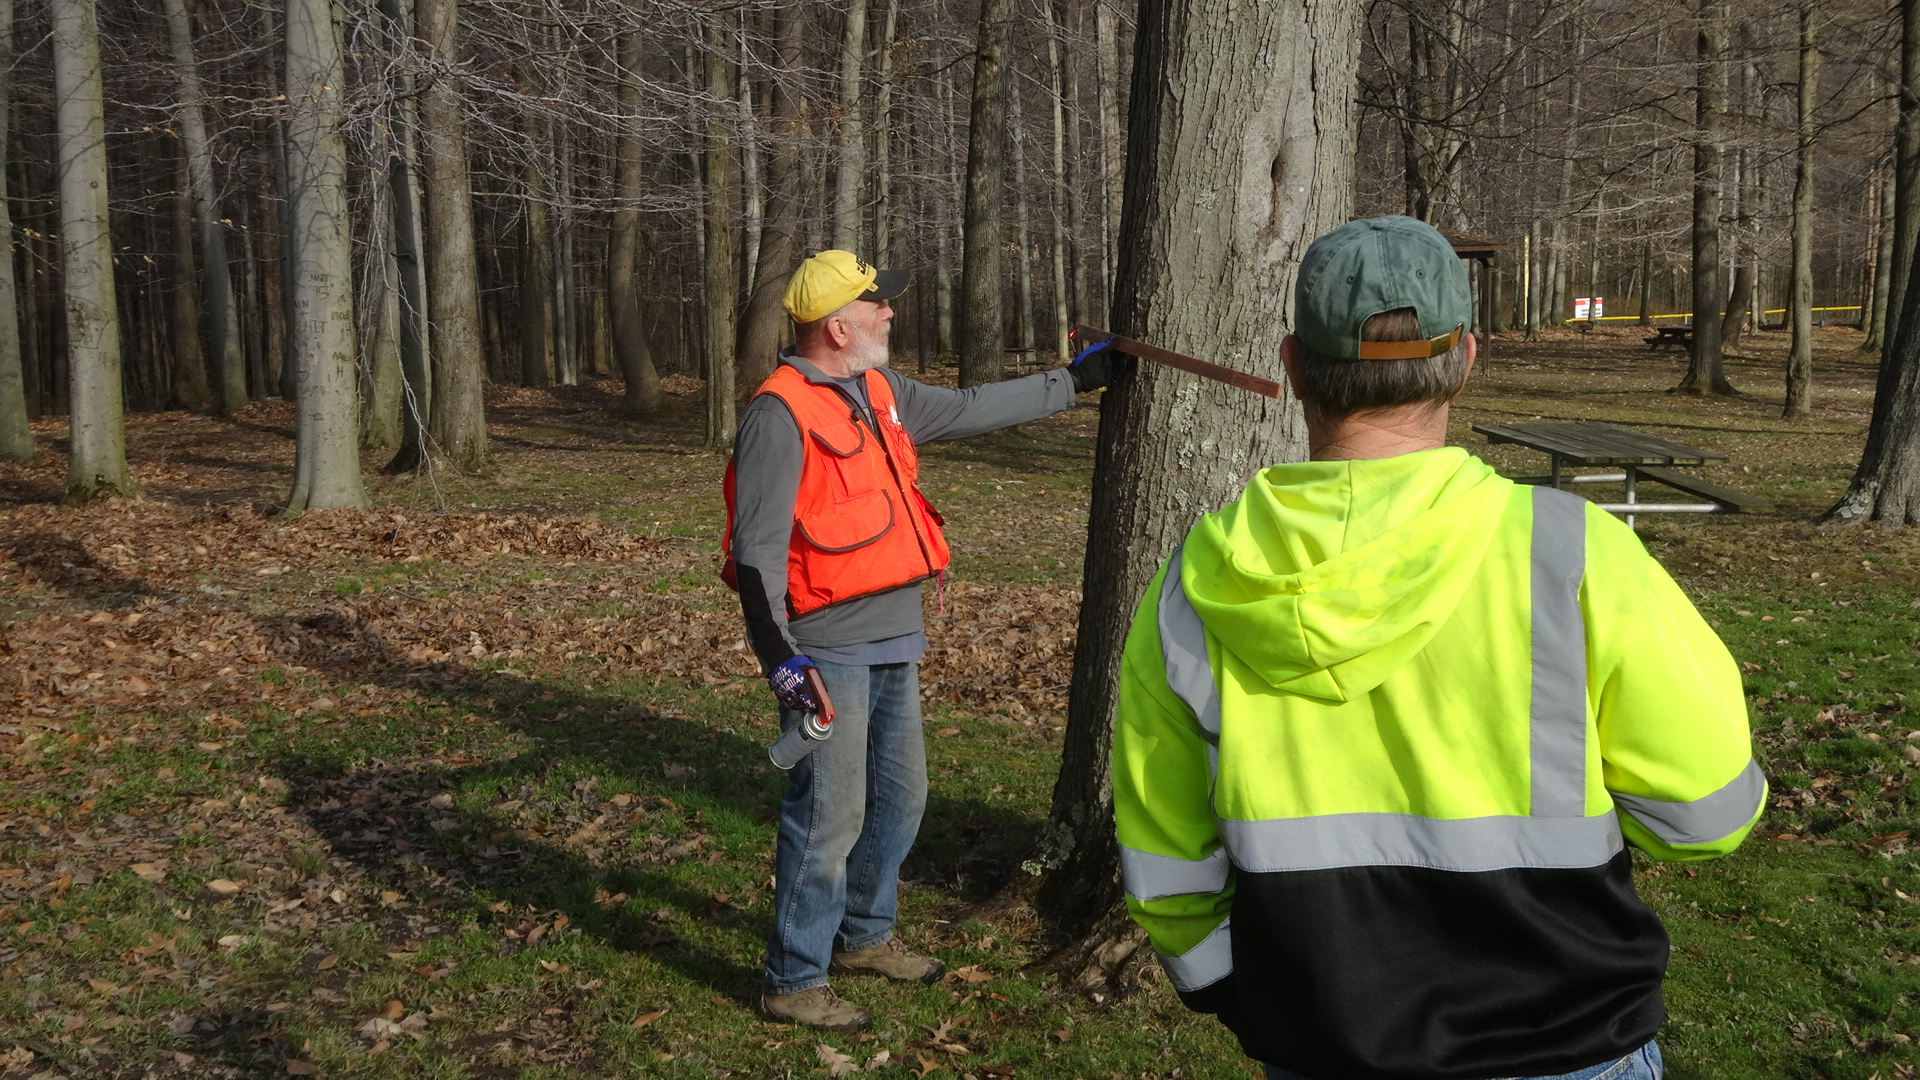 Forester Mark Popichak measures a tree during a risk assessment at Brookfield Township Community Park. Township Road Superintendent Jaime Fredenburg watches.